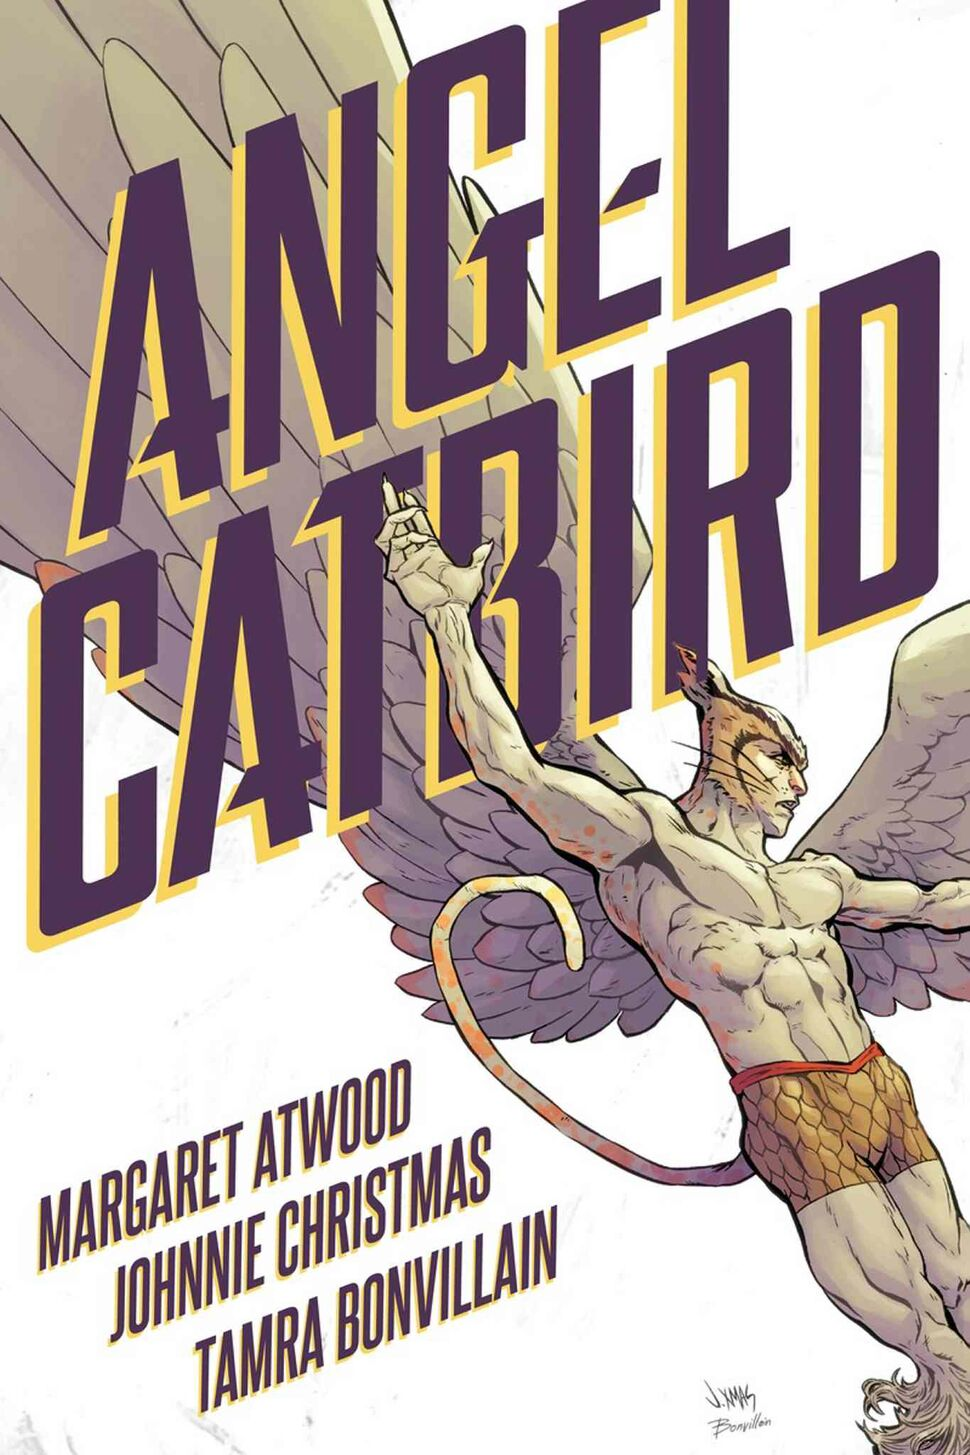 <h3>Angel Catbird Vol. 1</h3> By Margaret Atwood, Johnnie Christmas and Tamra Bonvillain <h4>A mild-mannered genetic engineer gains high-flying superpowers after a mishap with some DNA-altering serum. The result is Angel Catbird, a hybrid hero who springs to life in this pulpy, punny graphic novel from Canlit icon Margaret Atwood and inspired artist Johnnie Christmas.</h4>  — Nyala Ali